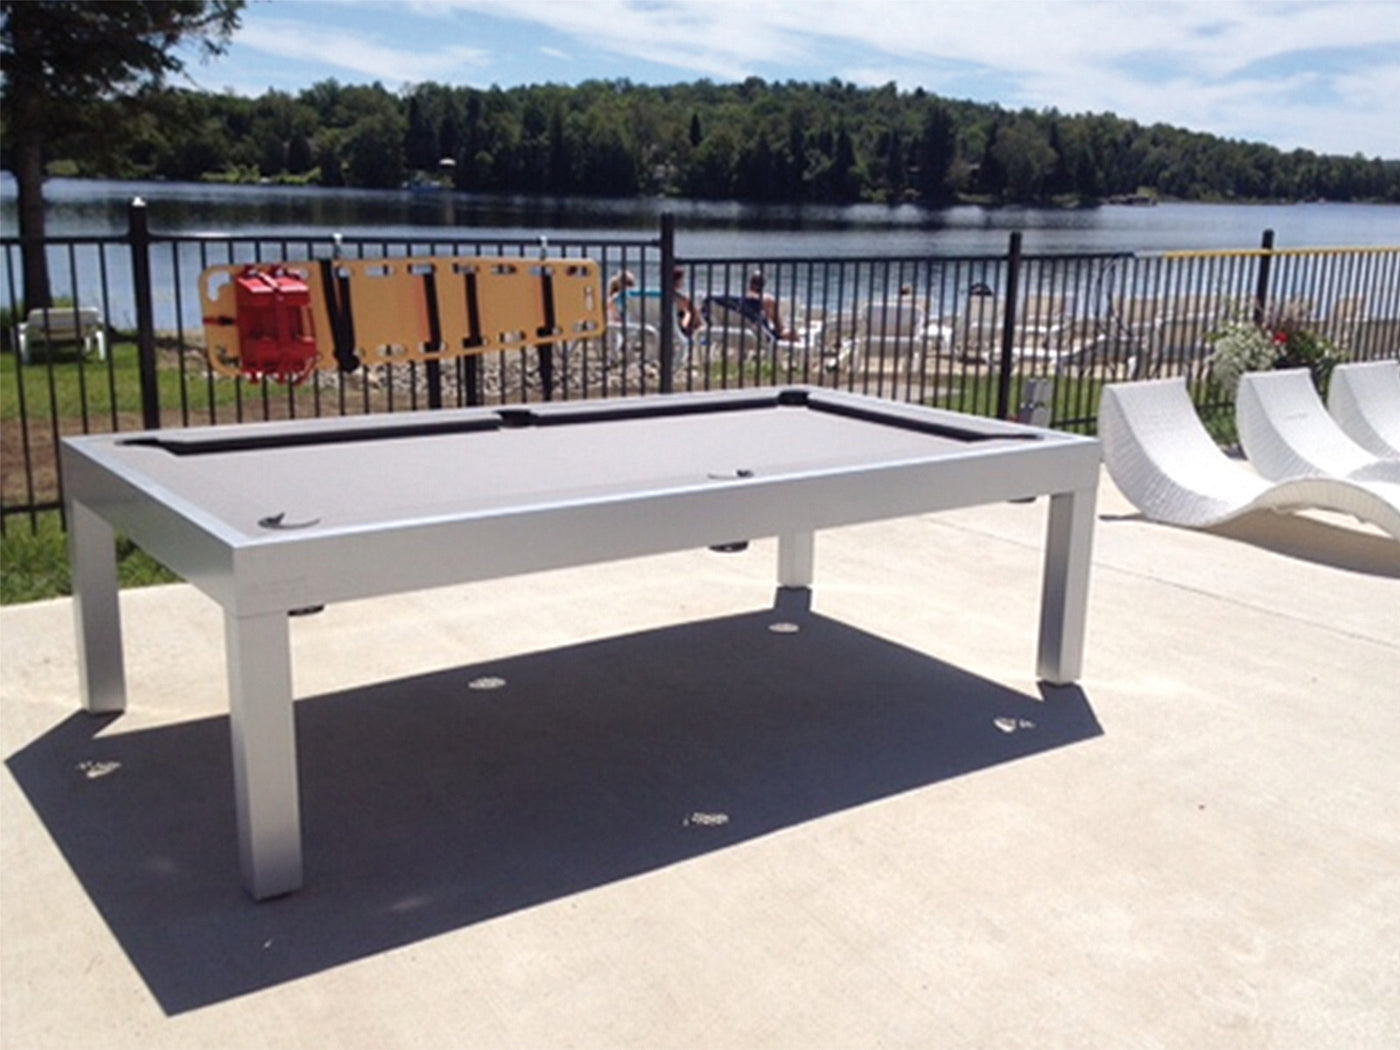 Canada Billiard Storm Outdoor Dining Pool Table Robbies Billiards